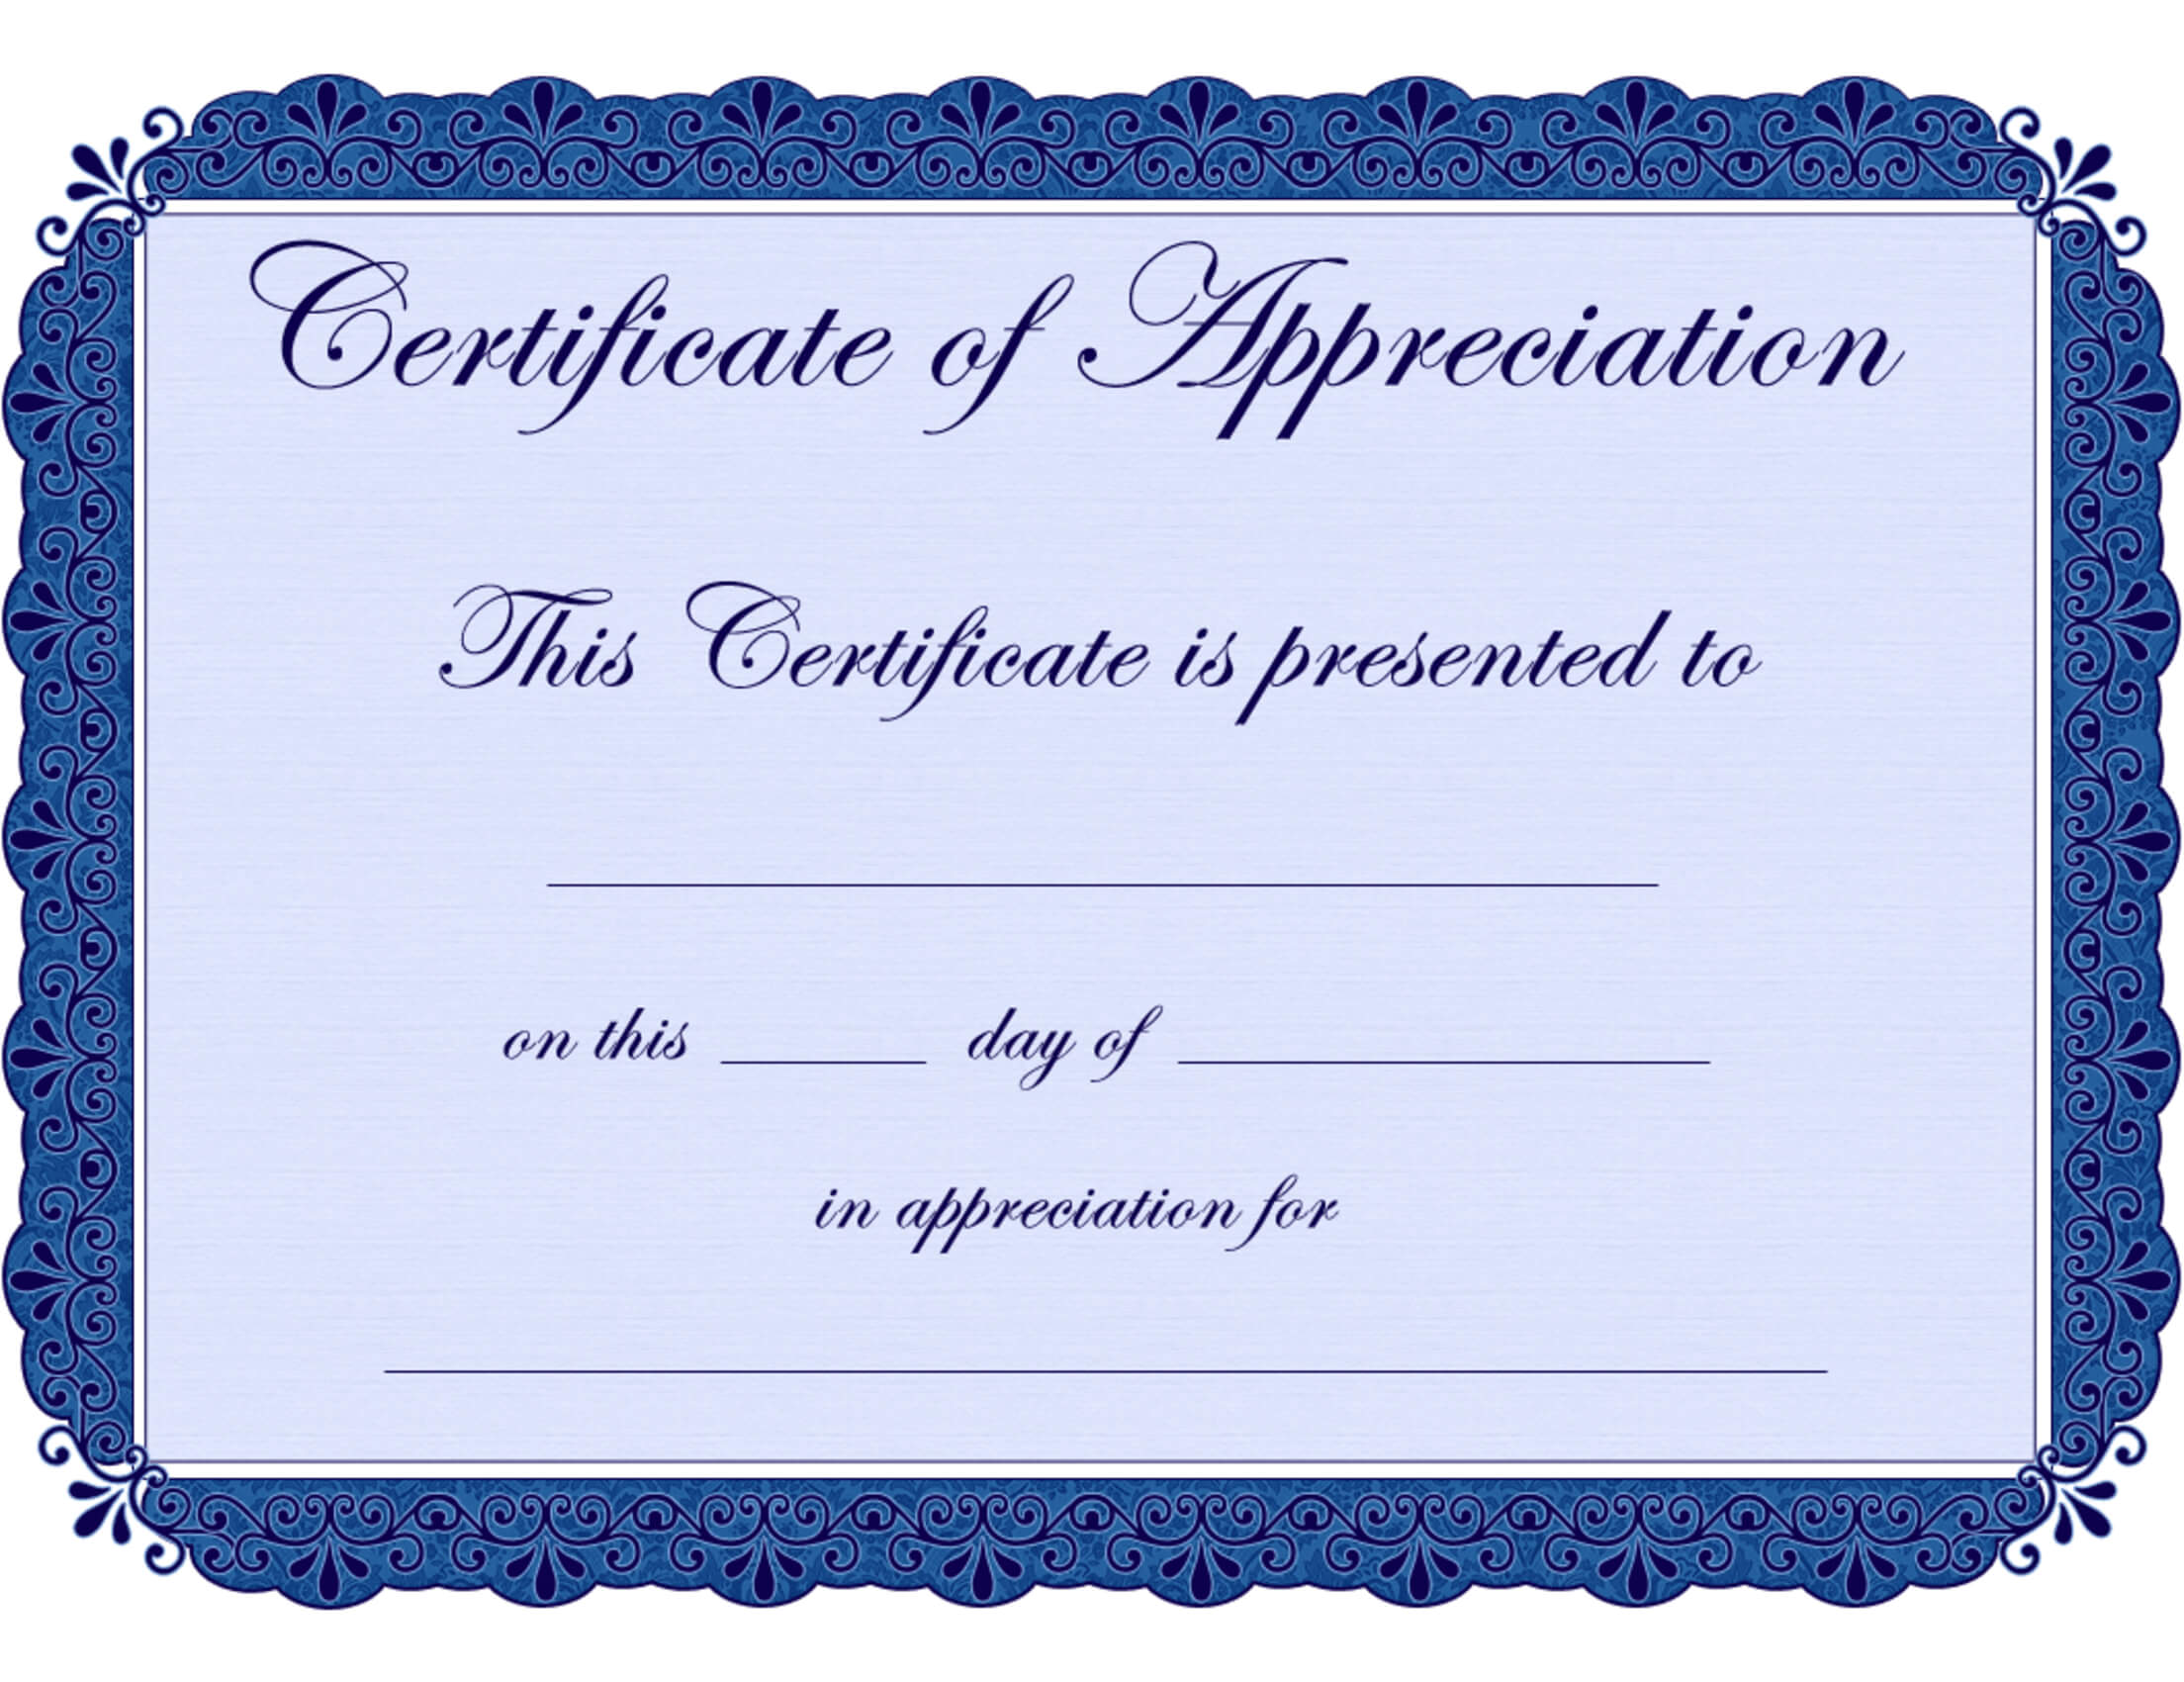 Free Printable Certificates Certificate Of Appreciation With Retirement Certificate Template